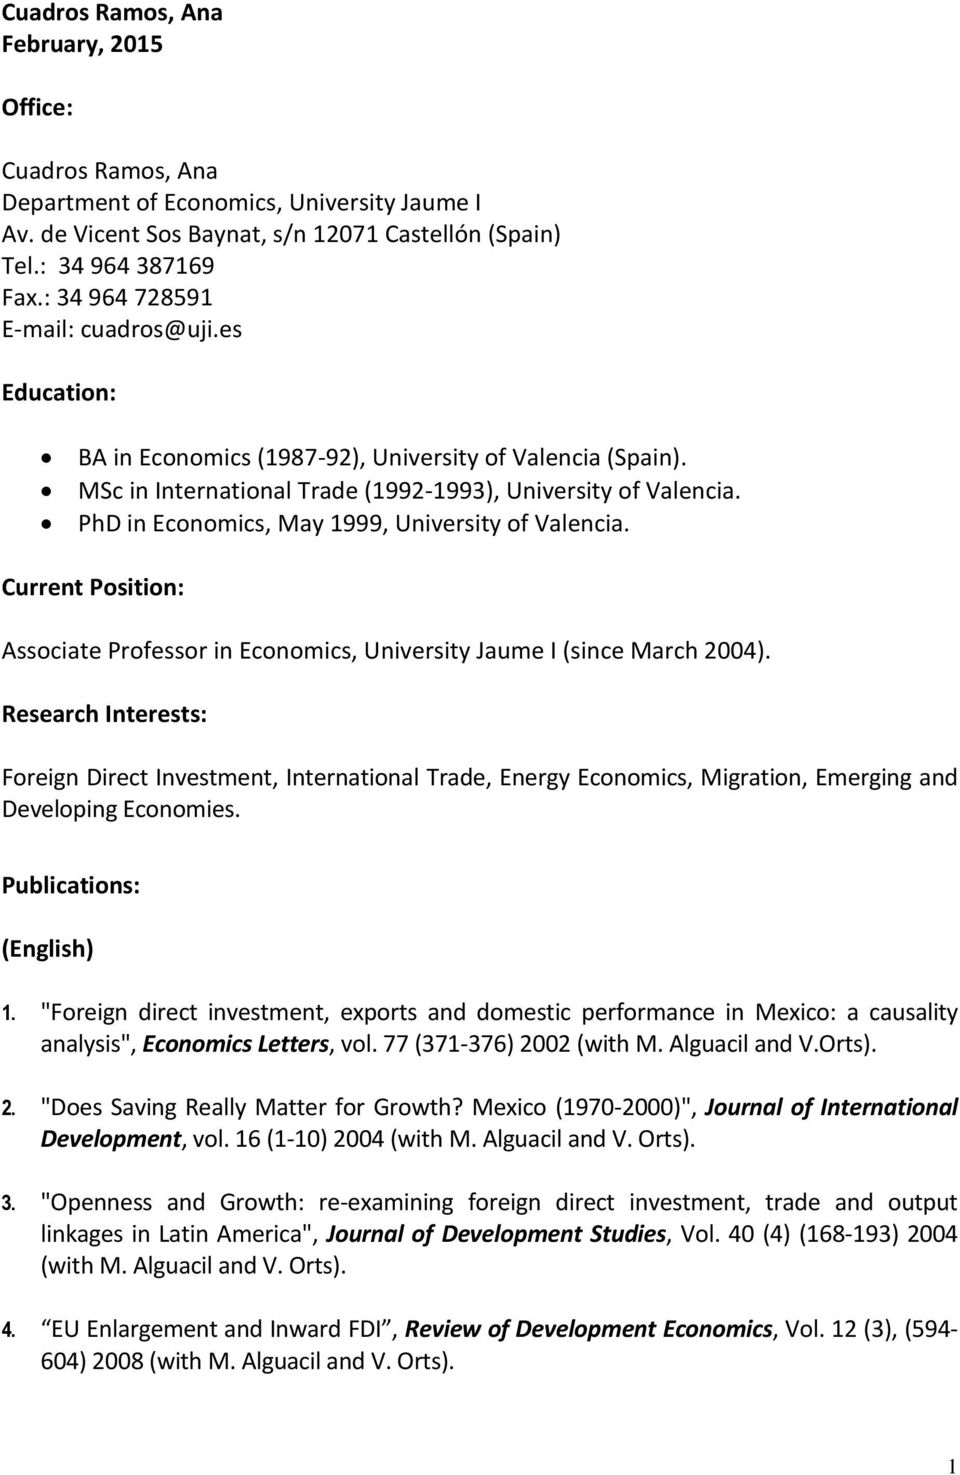 PhD in Economics, May 1999, University of Valencia. Current Position: Associate Professor in Economics, University Jaume I (since March 2004).